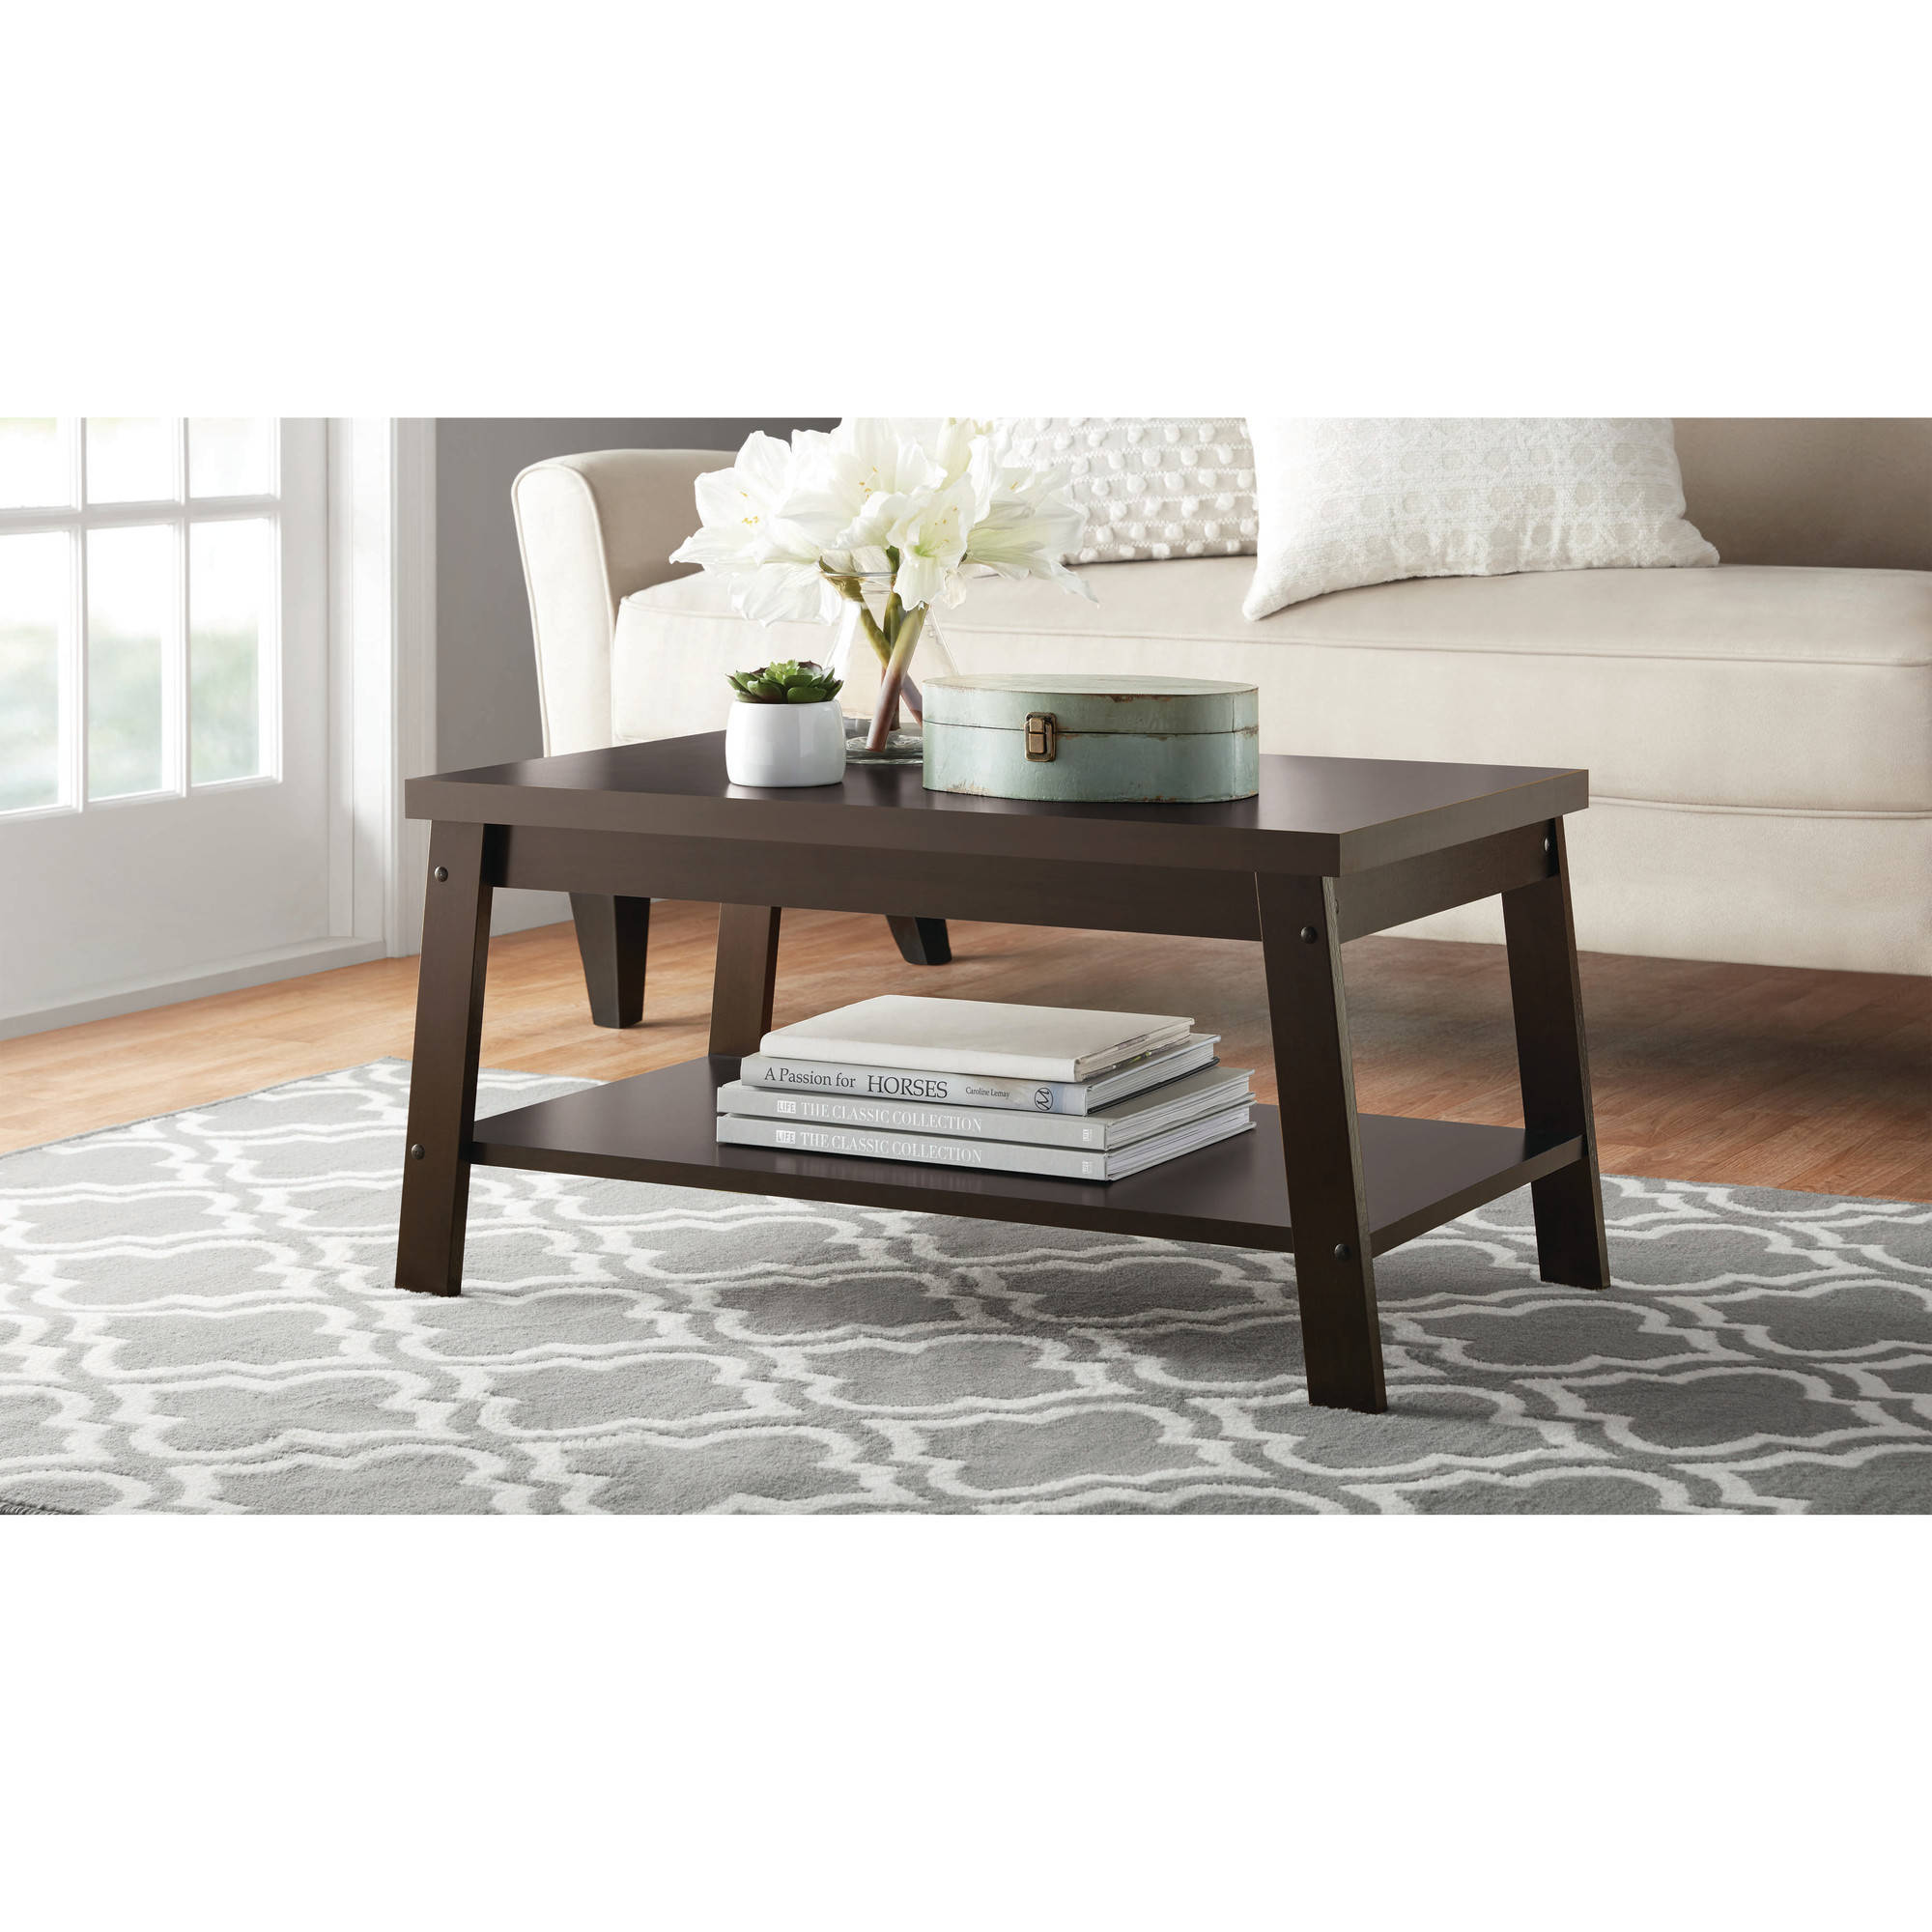 Walmart Coffee Tables: Mainstays Logan Coffee Table, Multiple Finishes